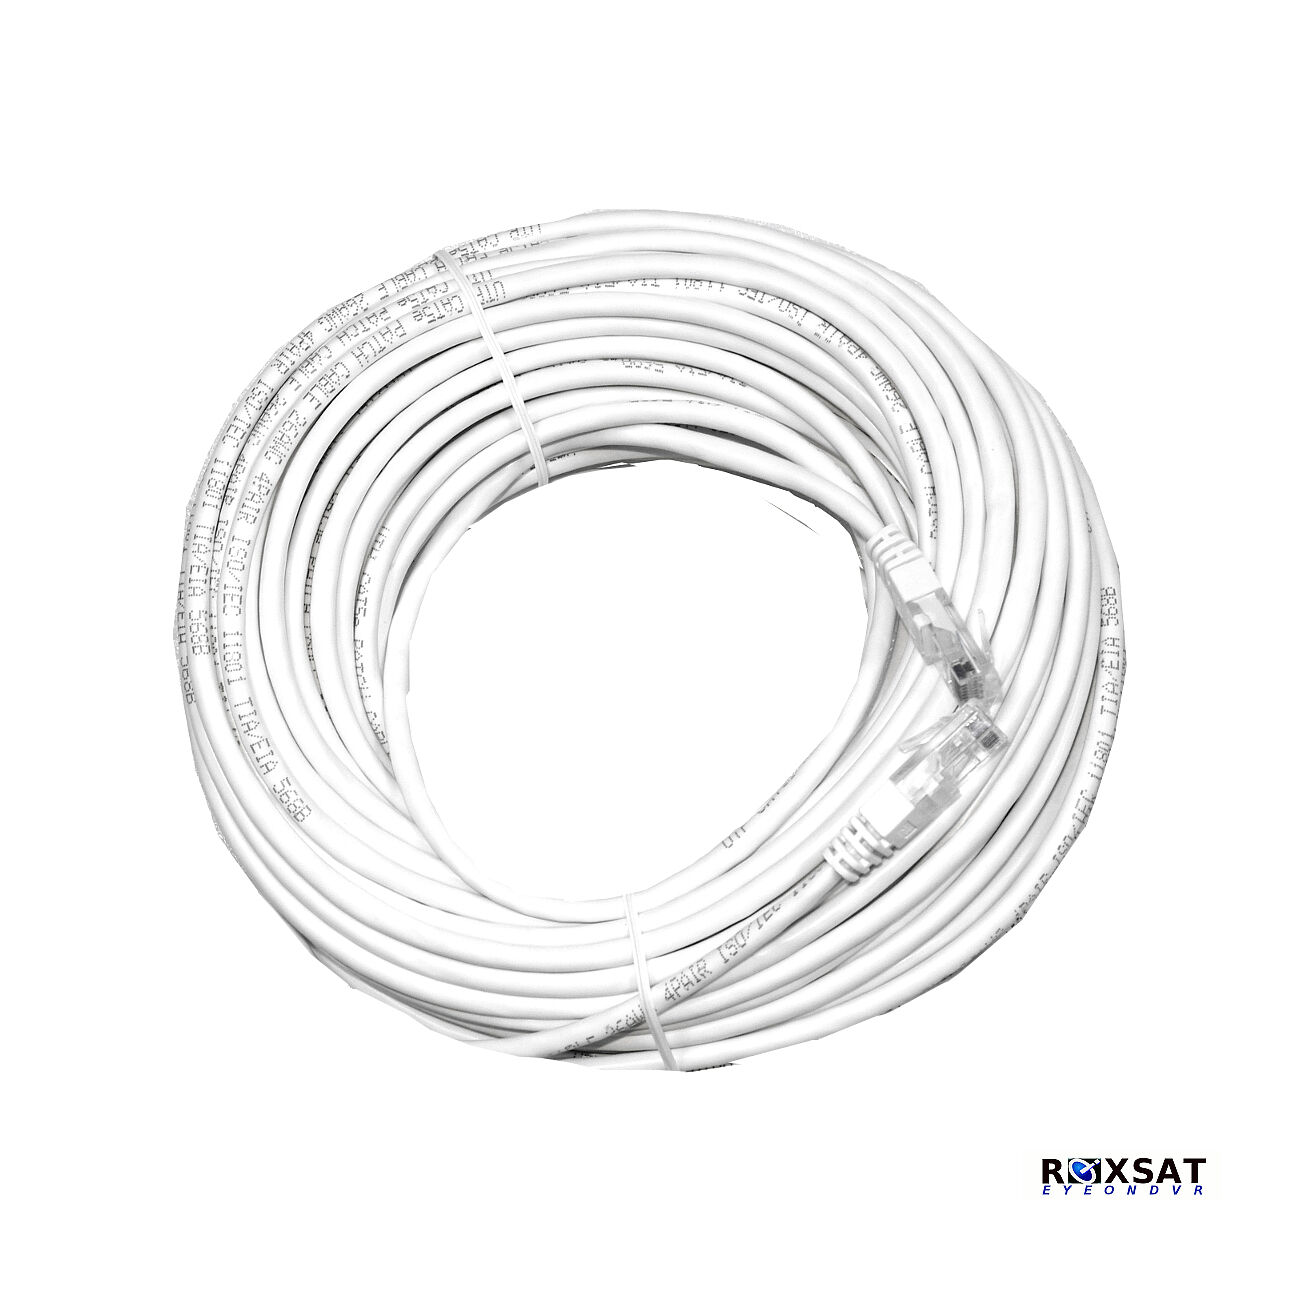 IP 50FT CAT5E-RJ-45 UTP CAT5E cable white CAT5E-50FT